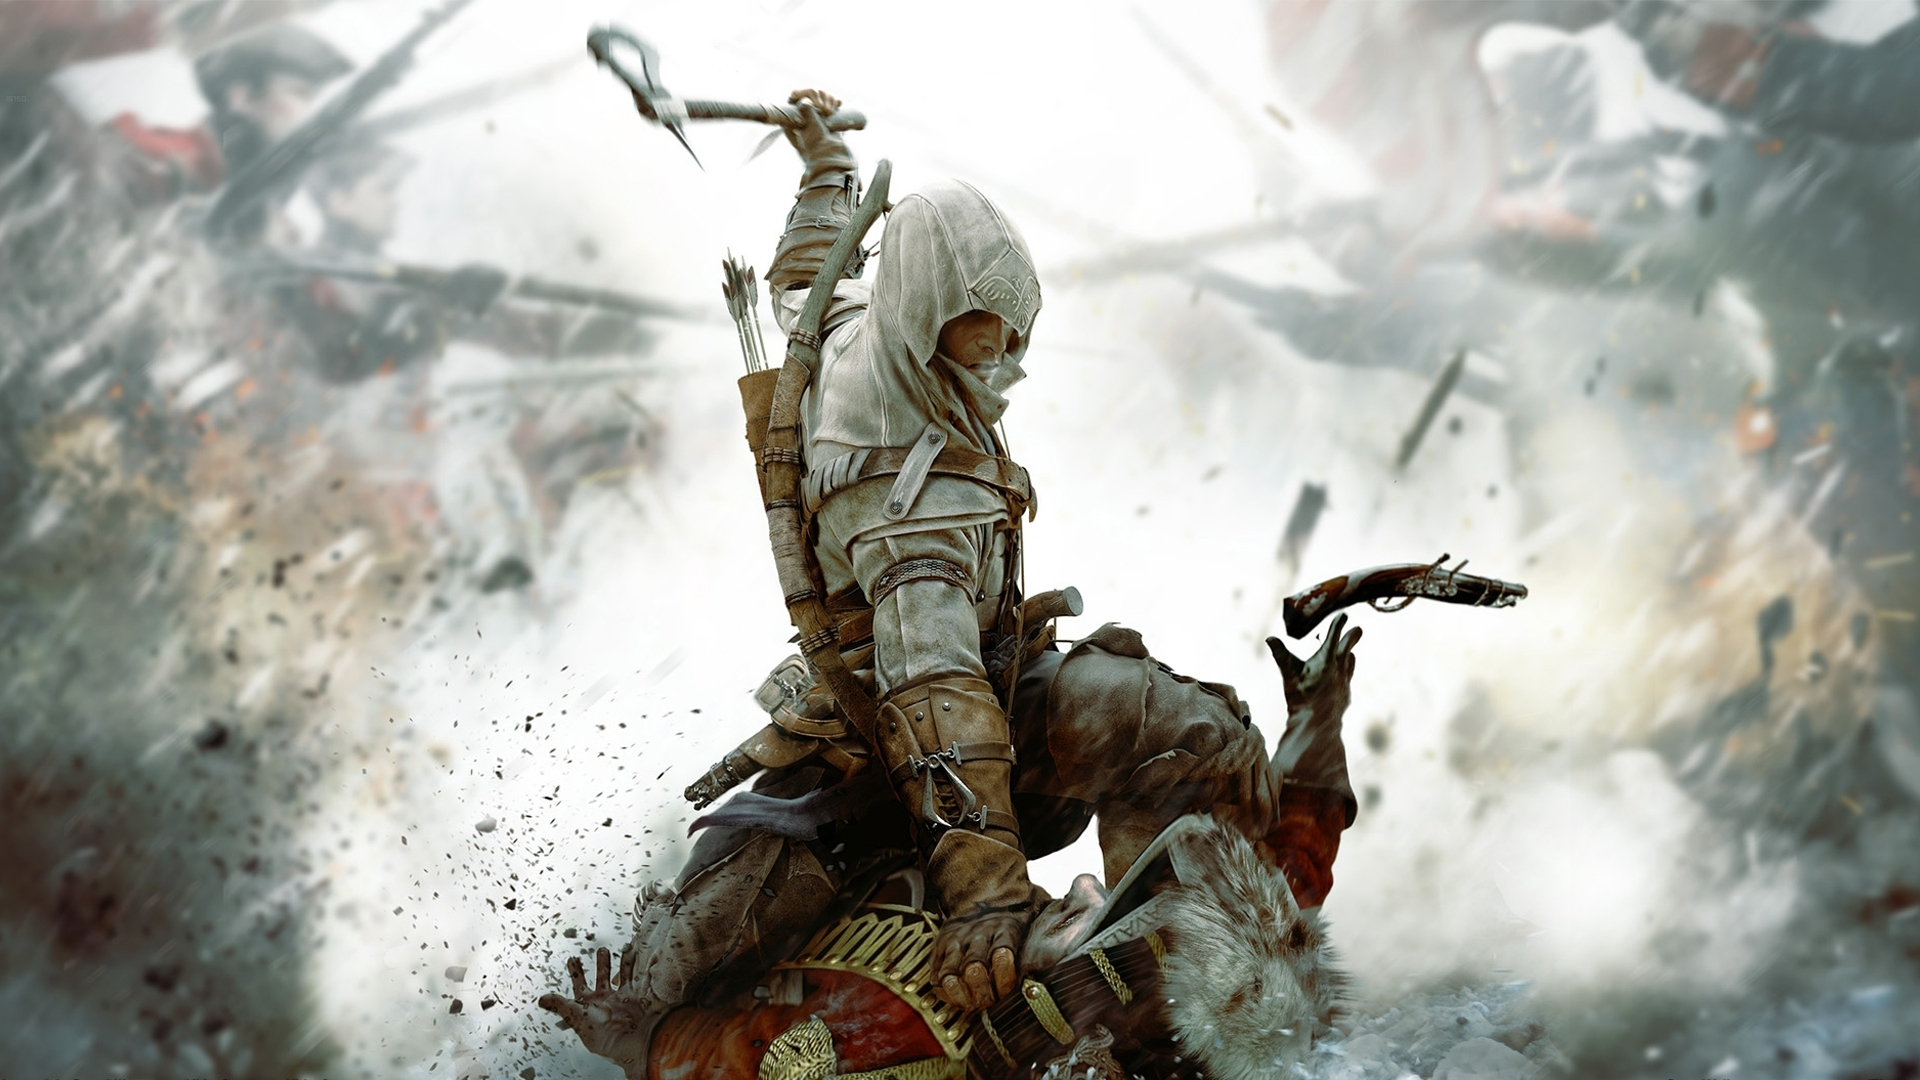 10 New Assassin's Creed Wallpaper 1366X768 FULL HD 1080p For PC Desktop